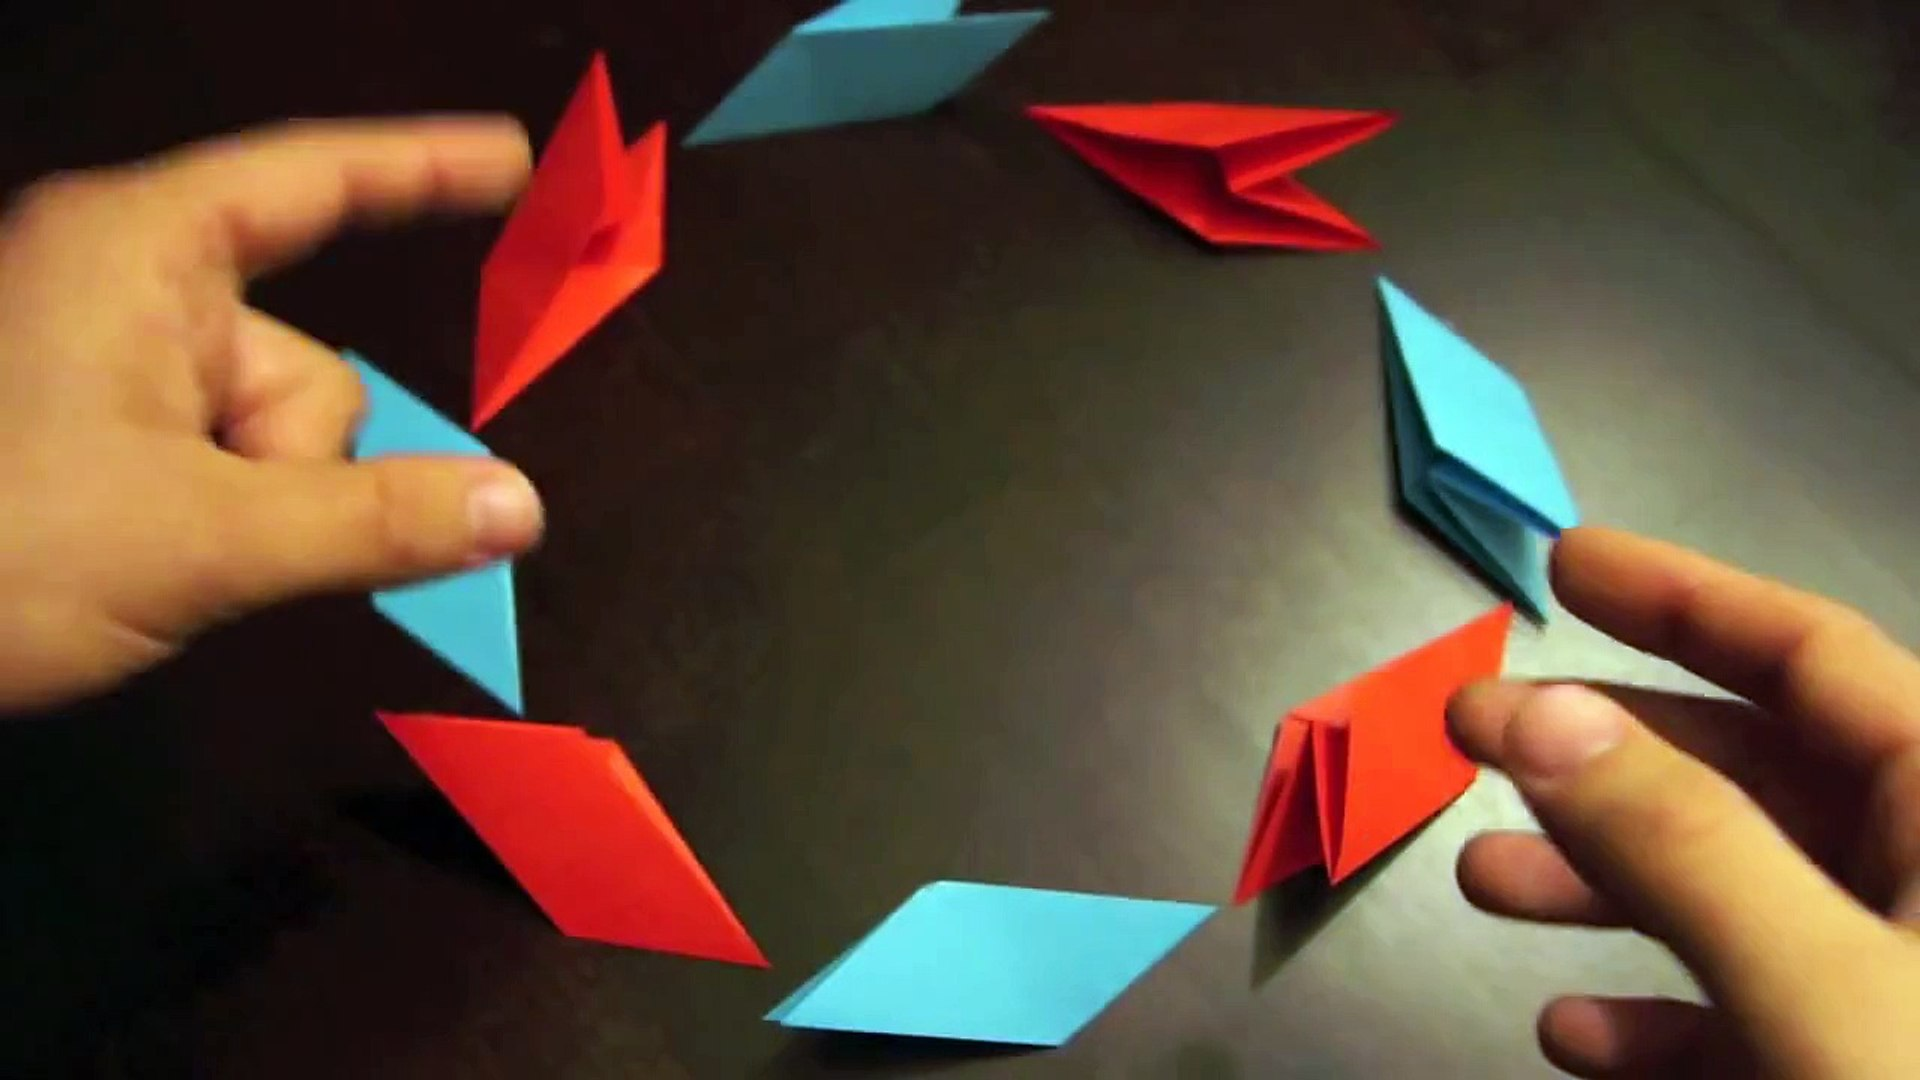 How To Make Paper Ninja Star | Very Easy | TCraft - YouTube | 1080x1920